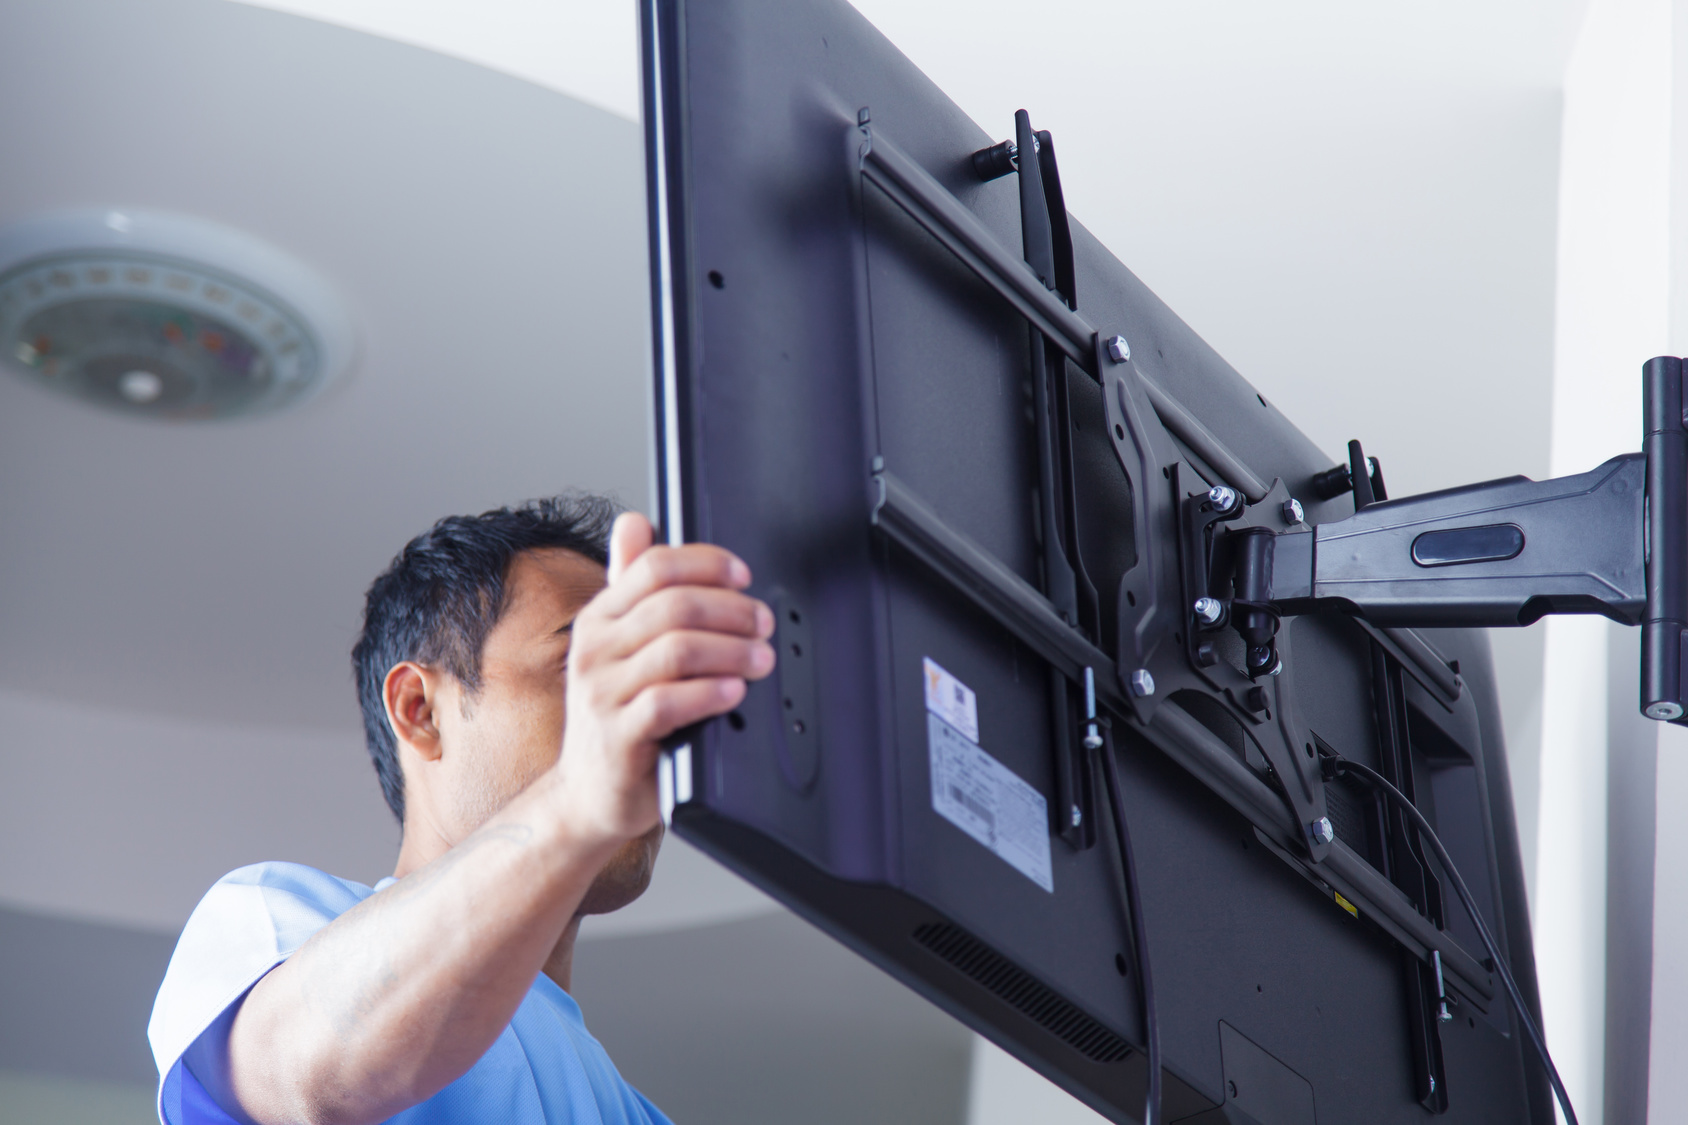 Installing mount TV on the wall at home or office